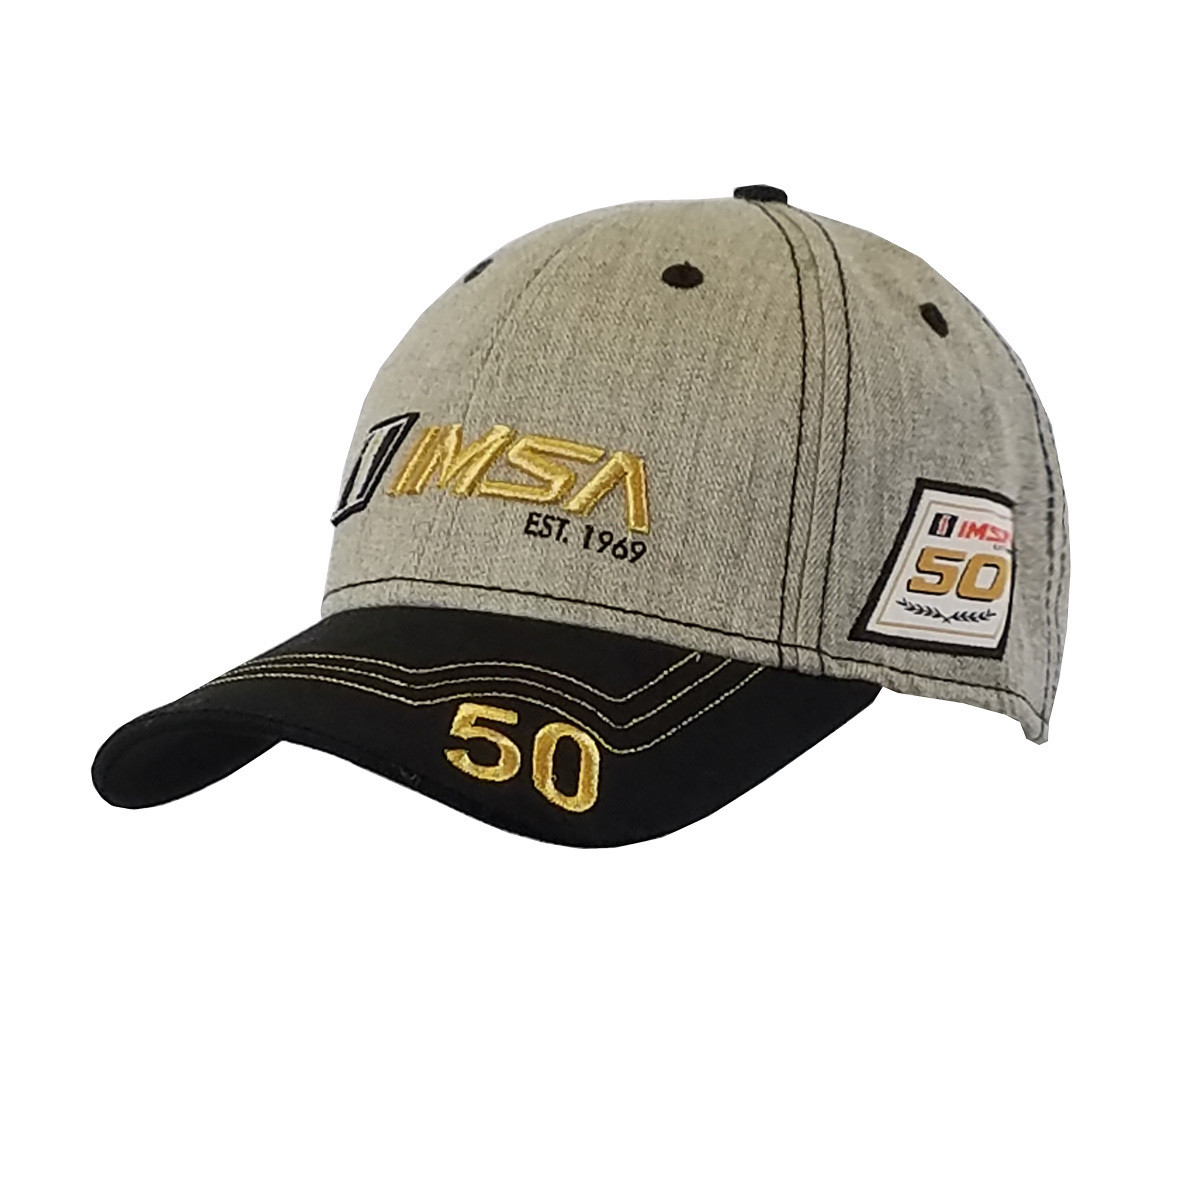 IMSA Gold Grey/Blk Hat